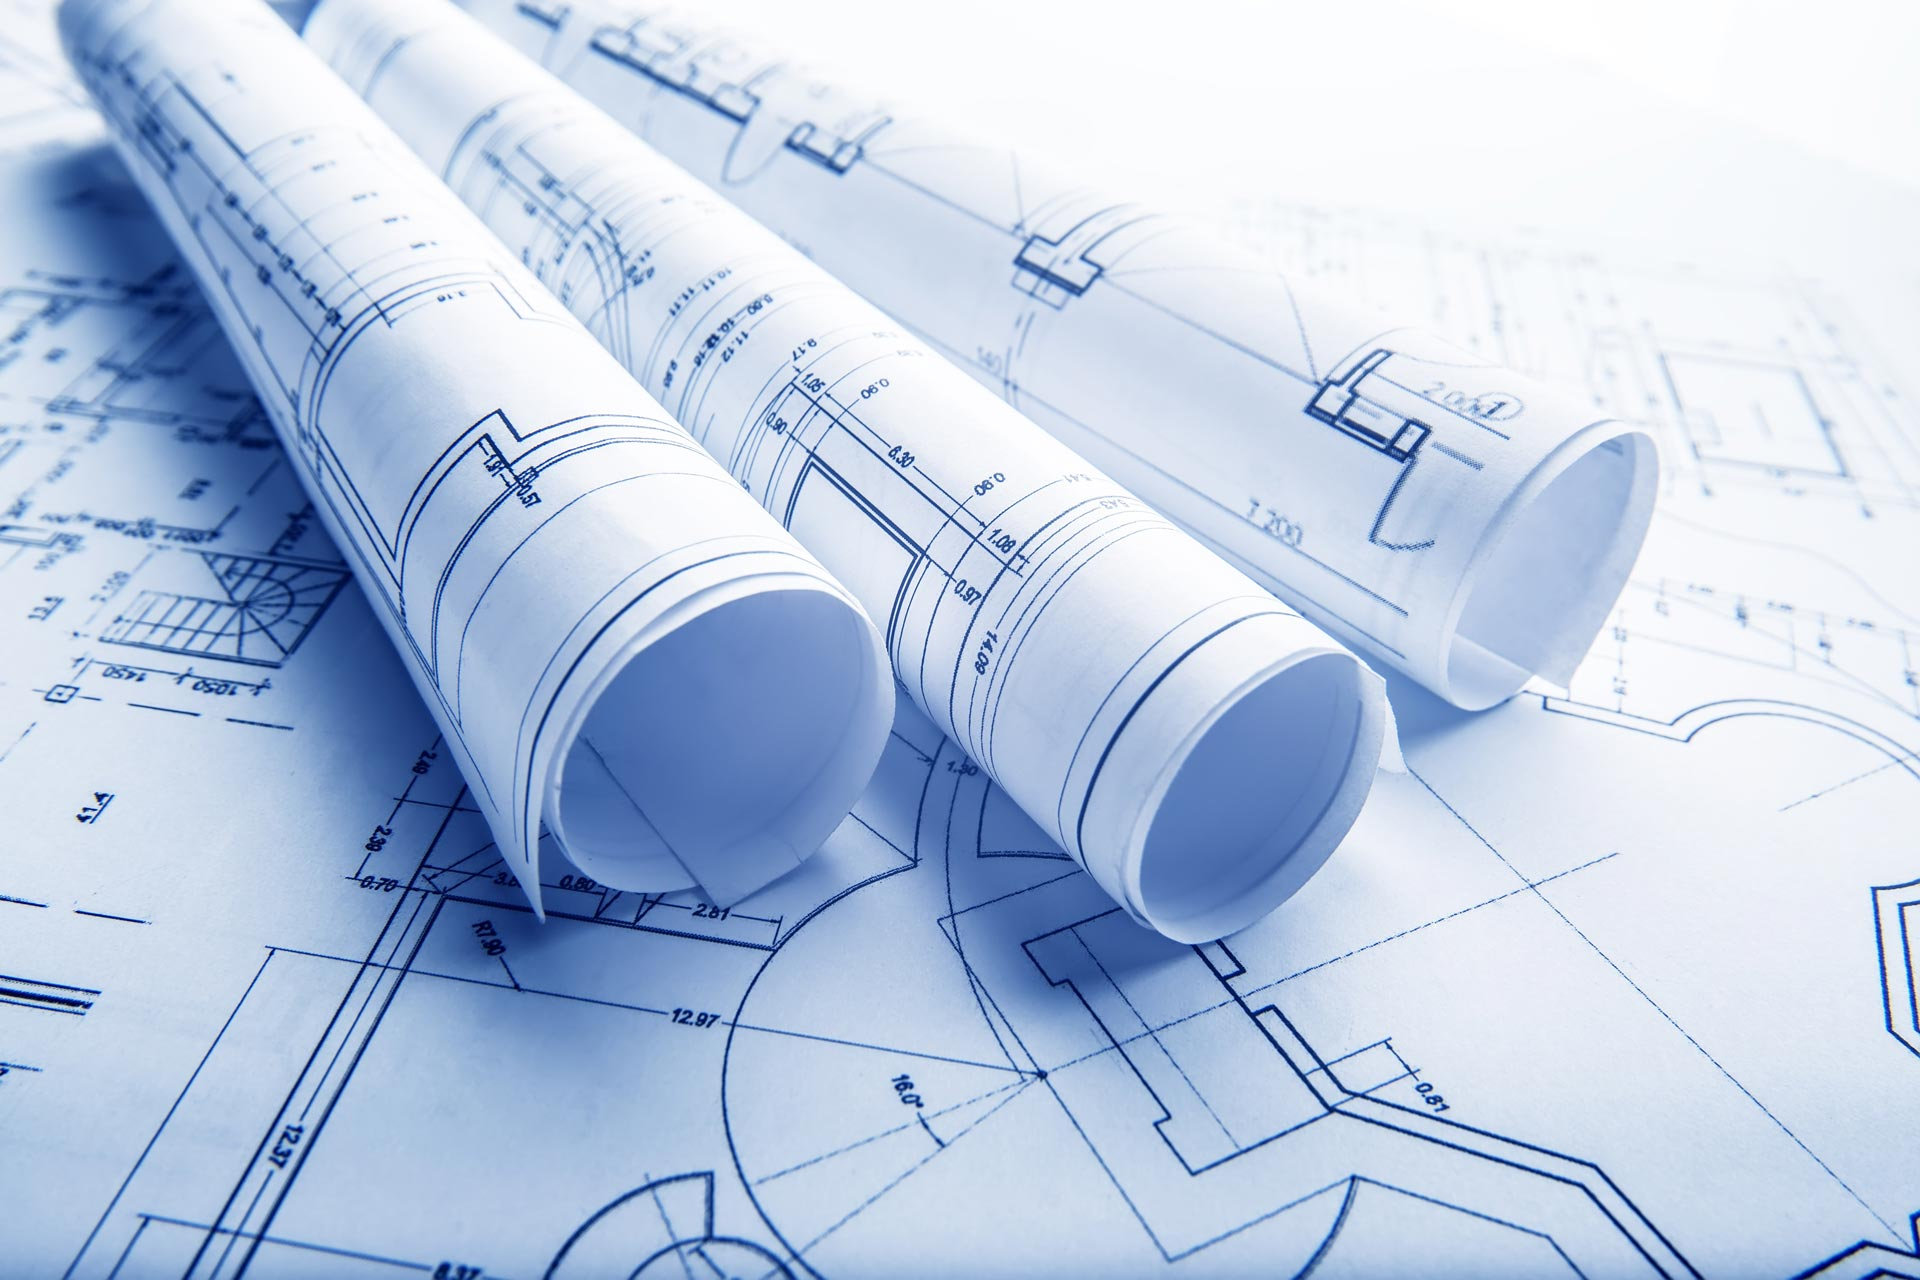 blueprint for architectural project